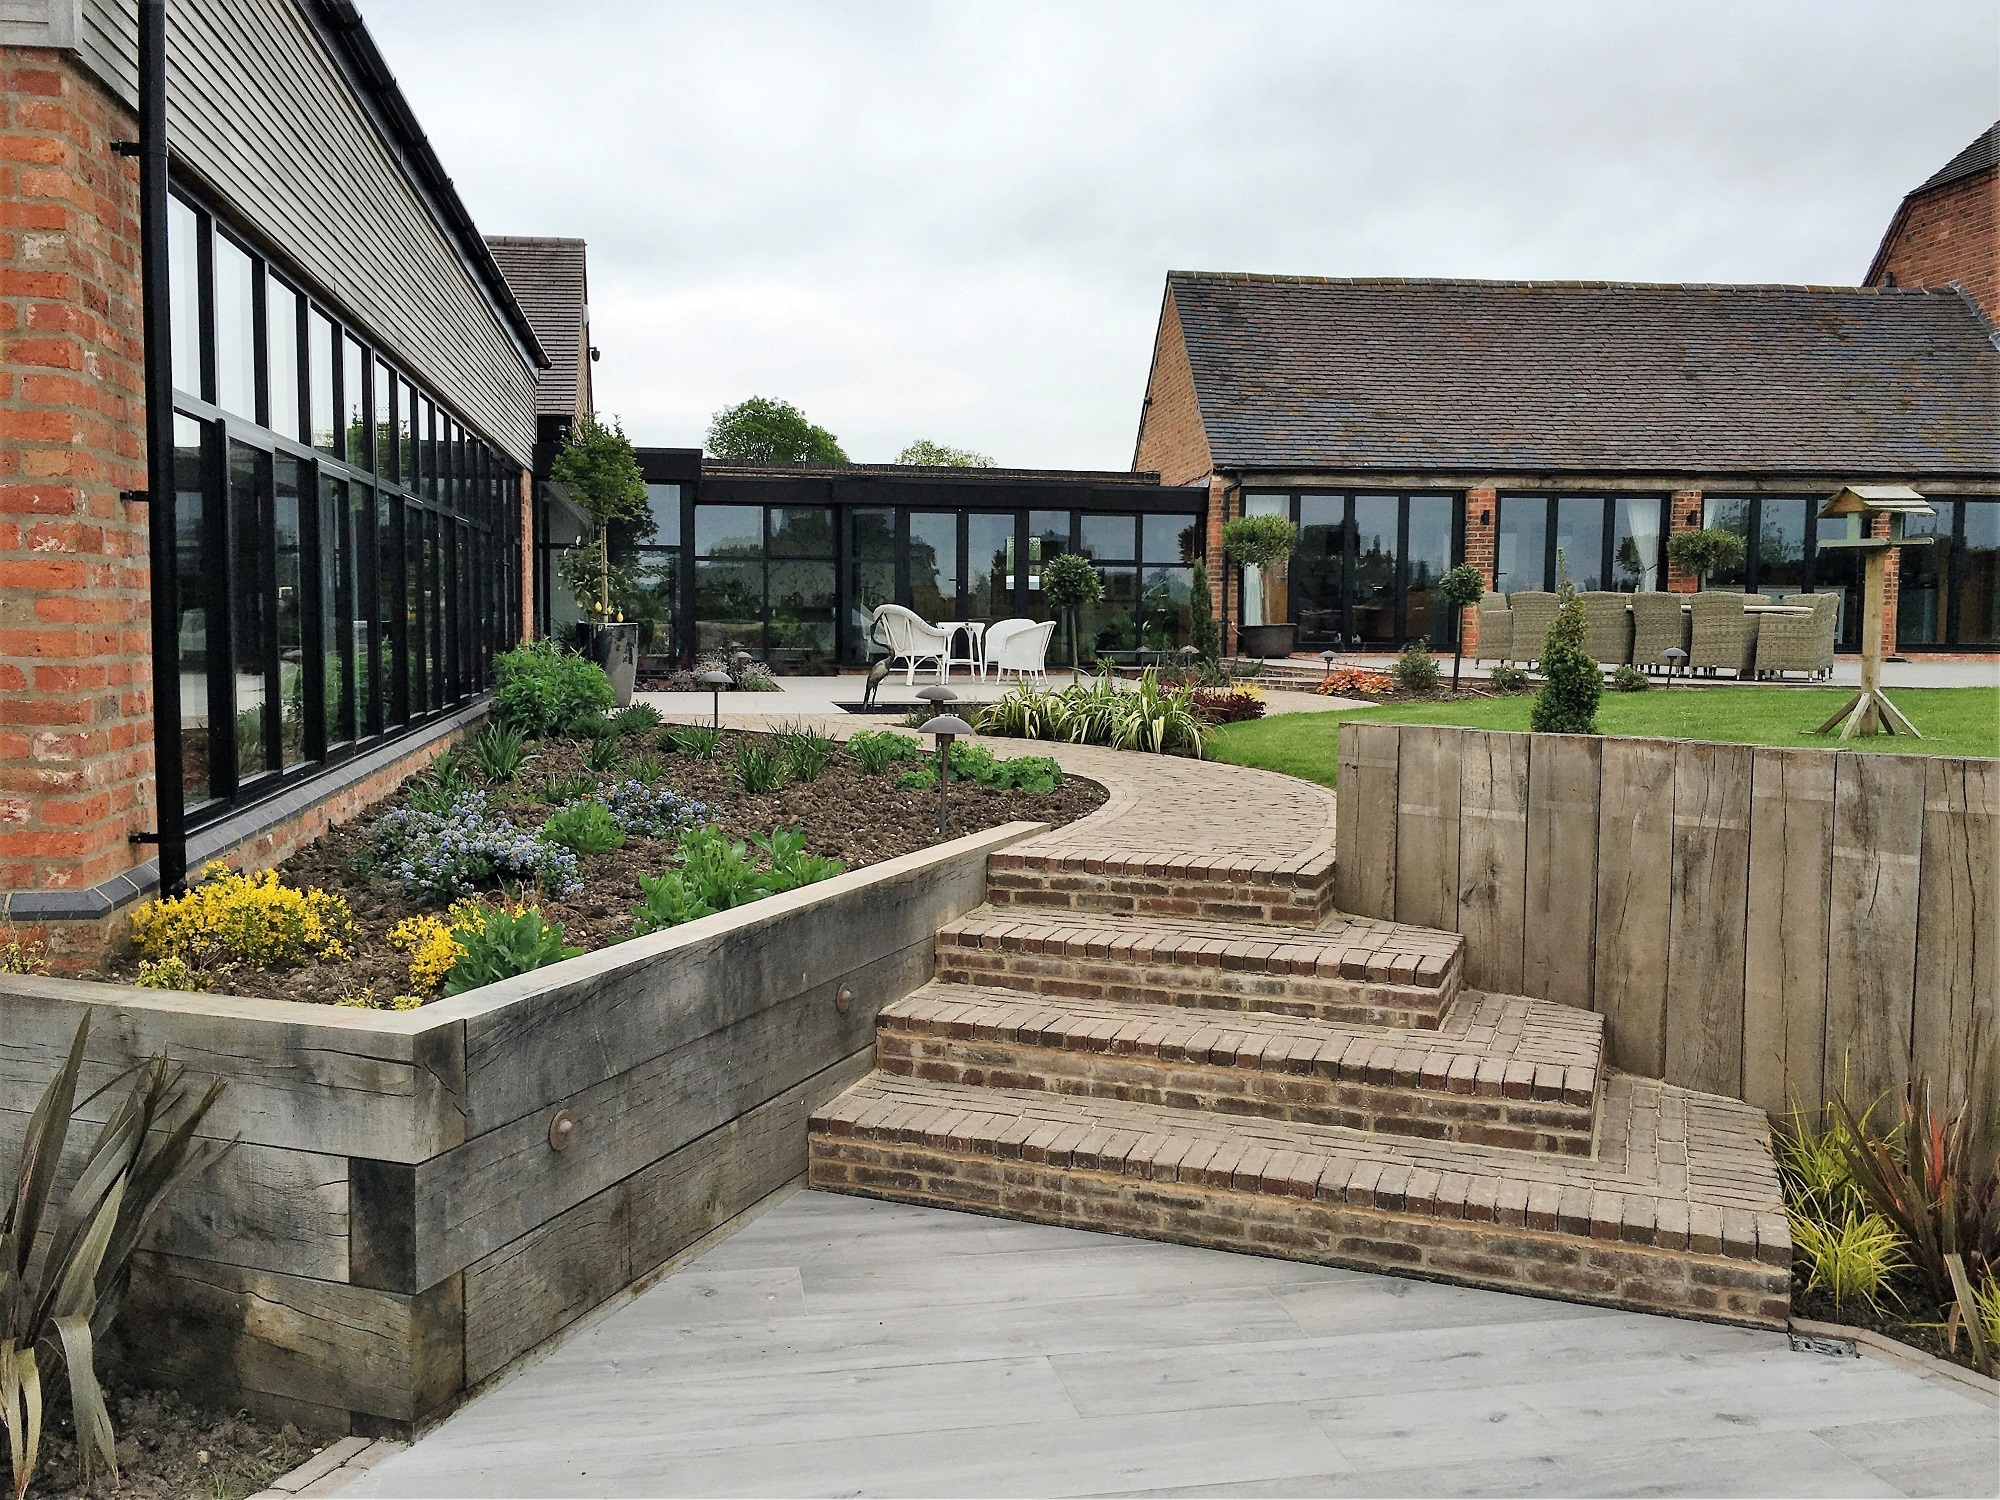 Barn conversion in Leicestershire retainer walls and steps between two garden levels (8)